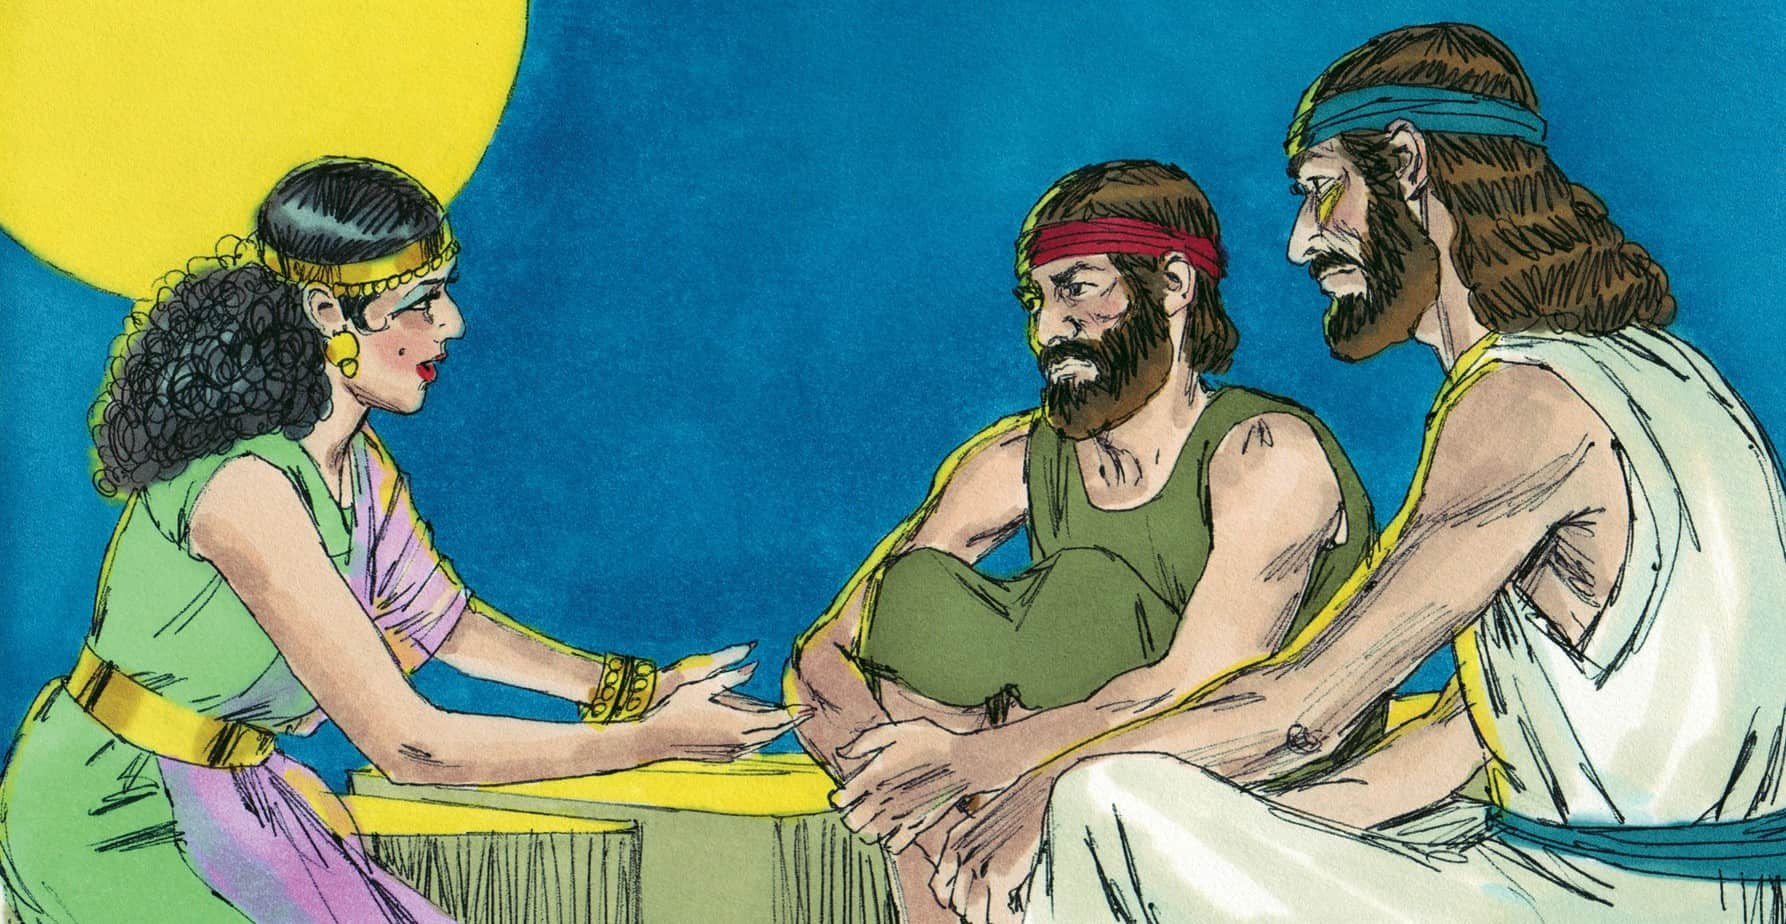 bible story skit rahab and the spies joshua 2